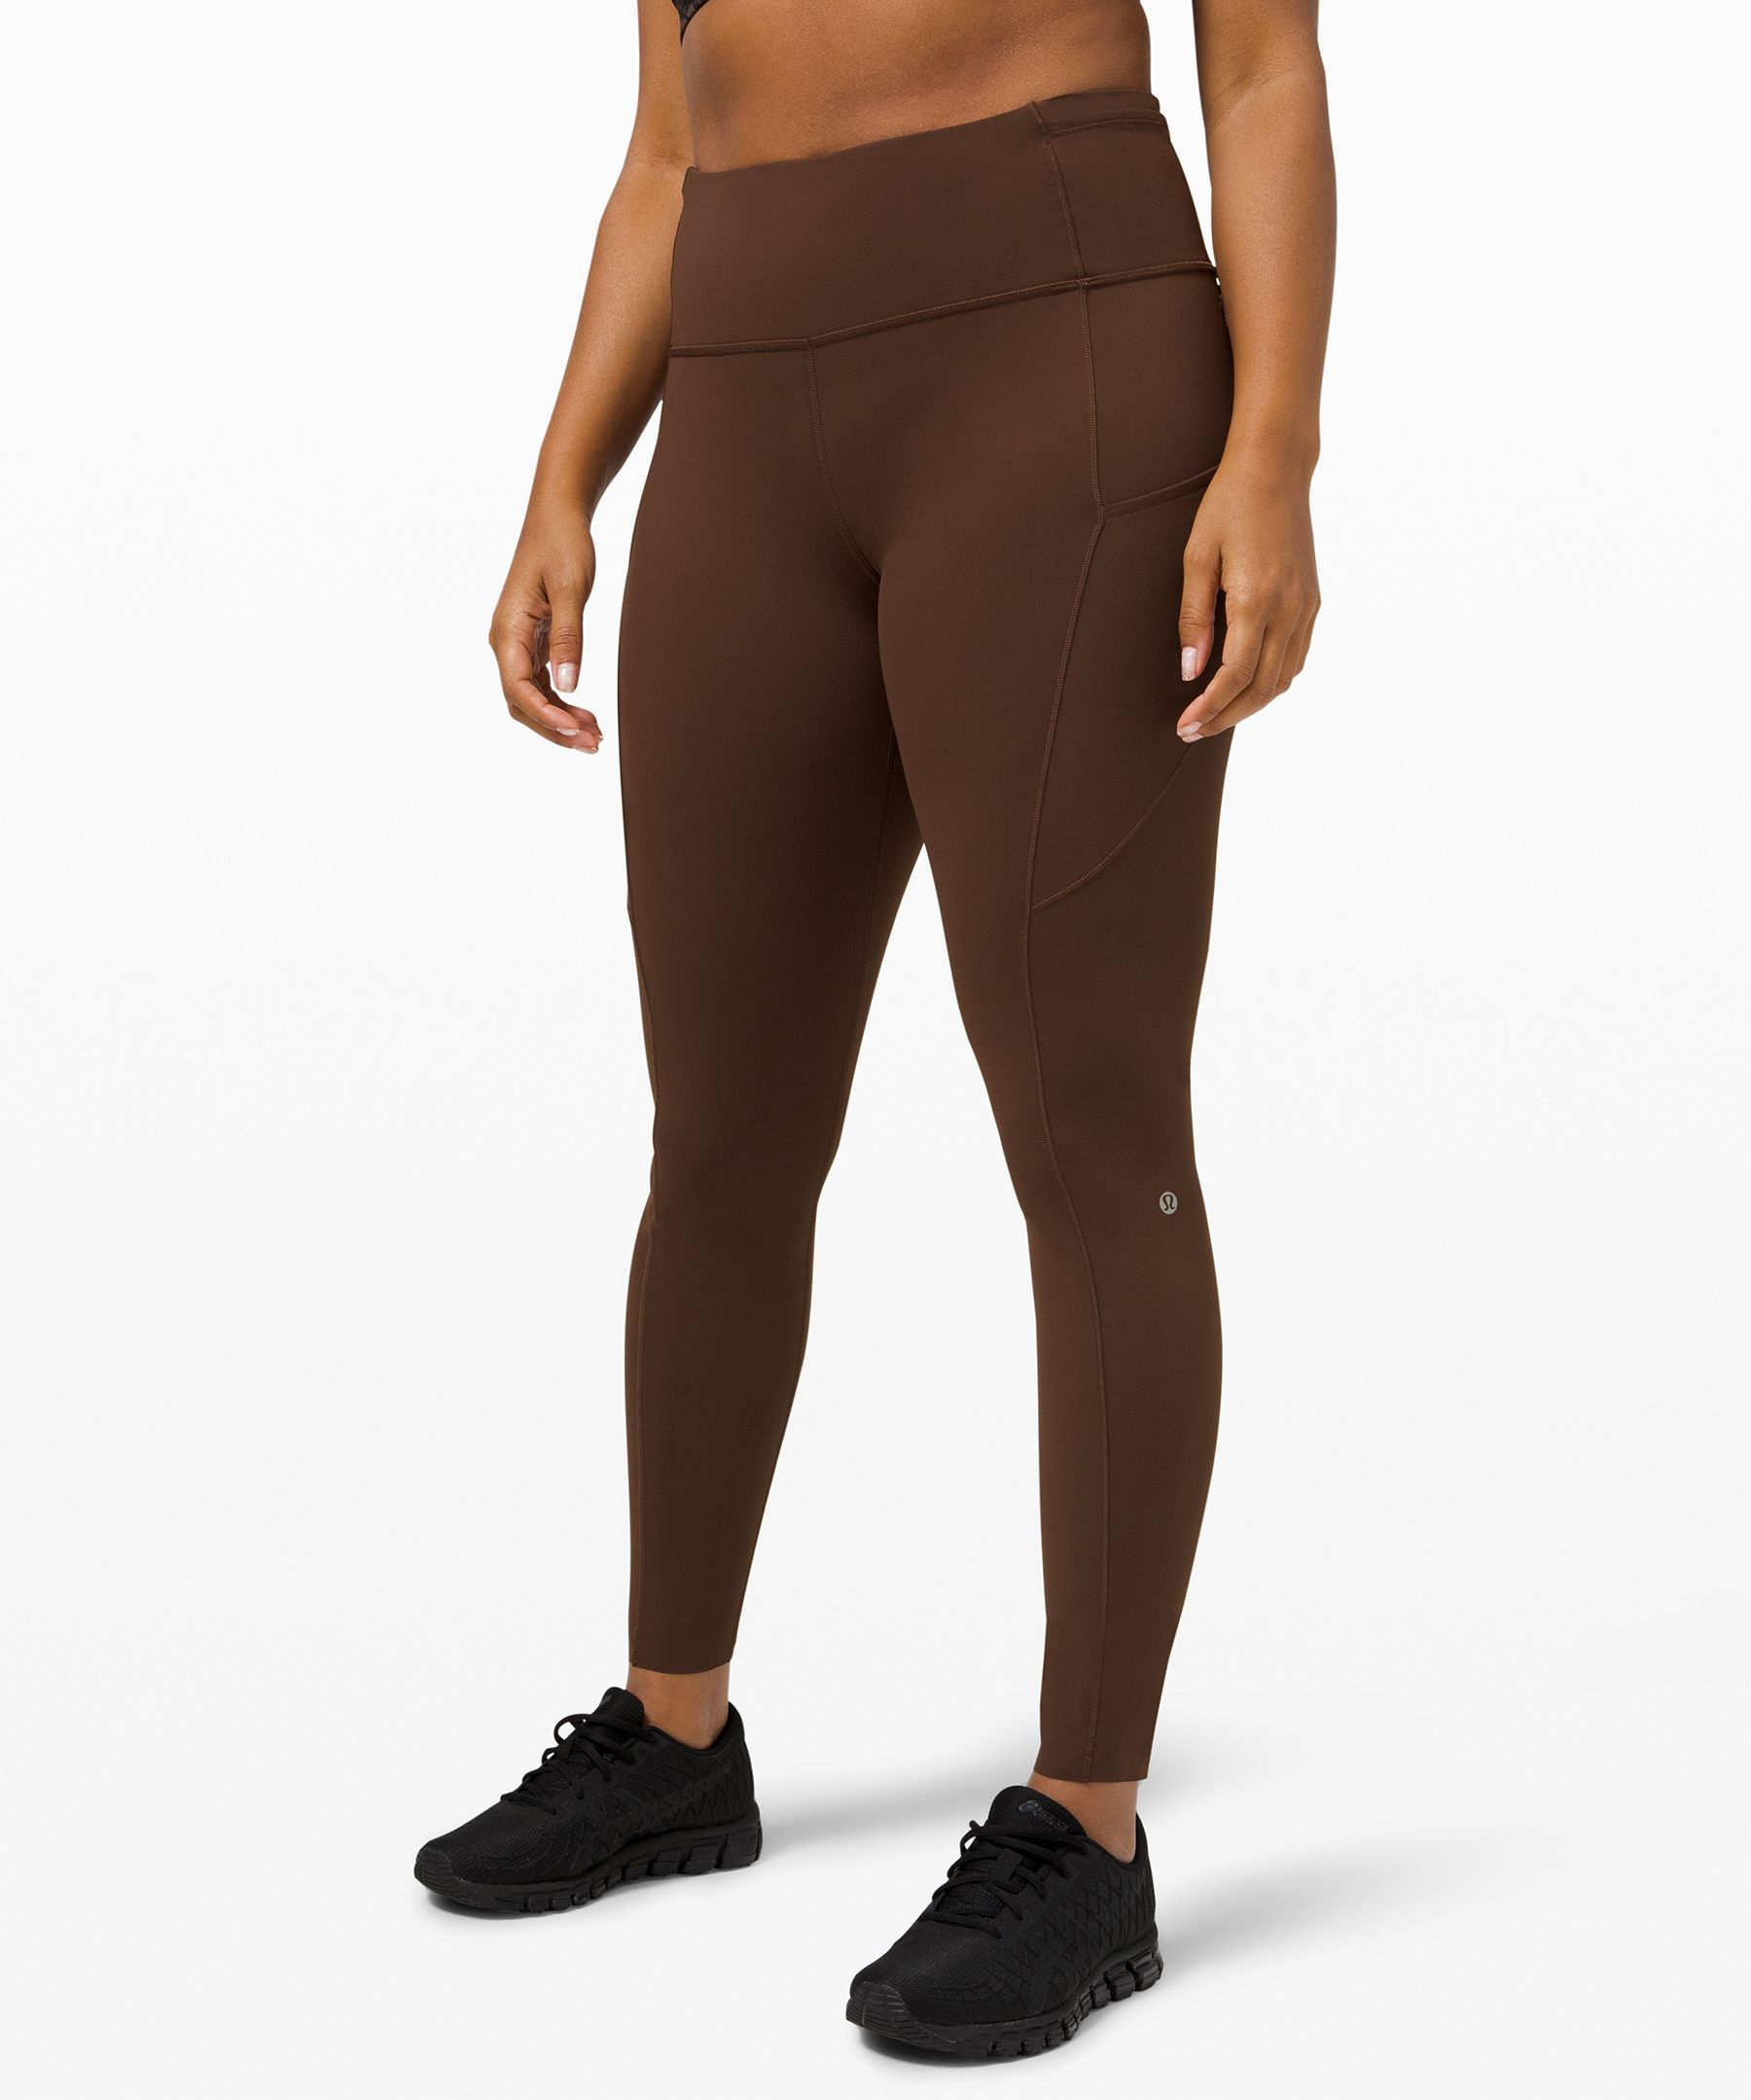 Fast and Free High-Rise Tight 28 Non-Reflective Brushed Nulux